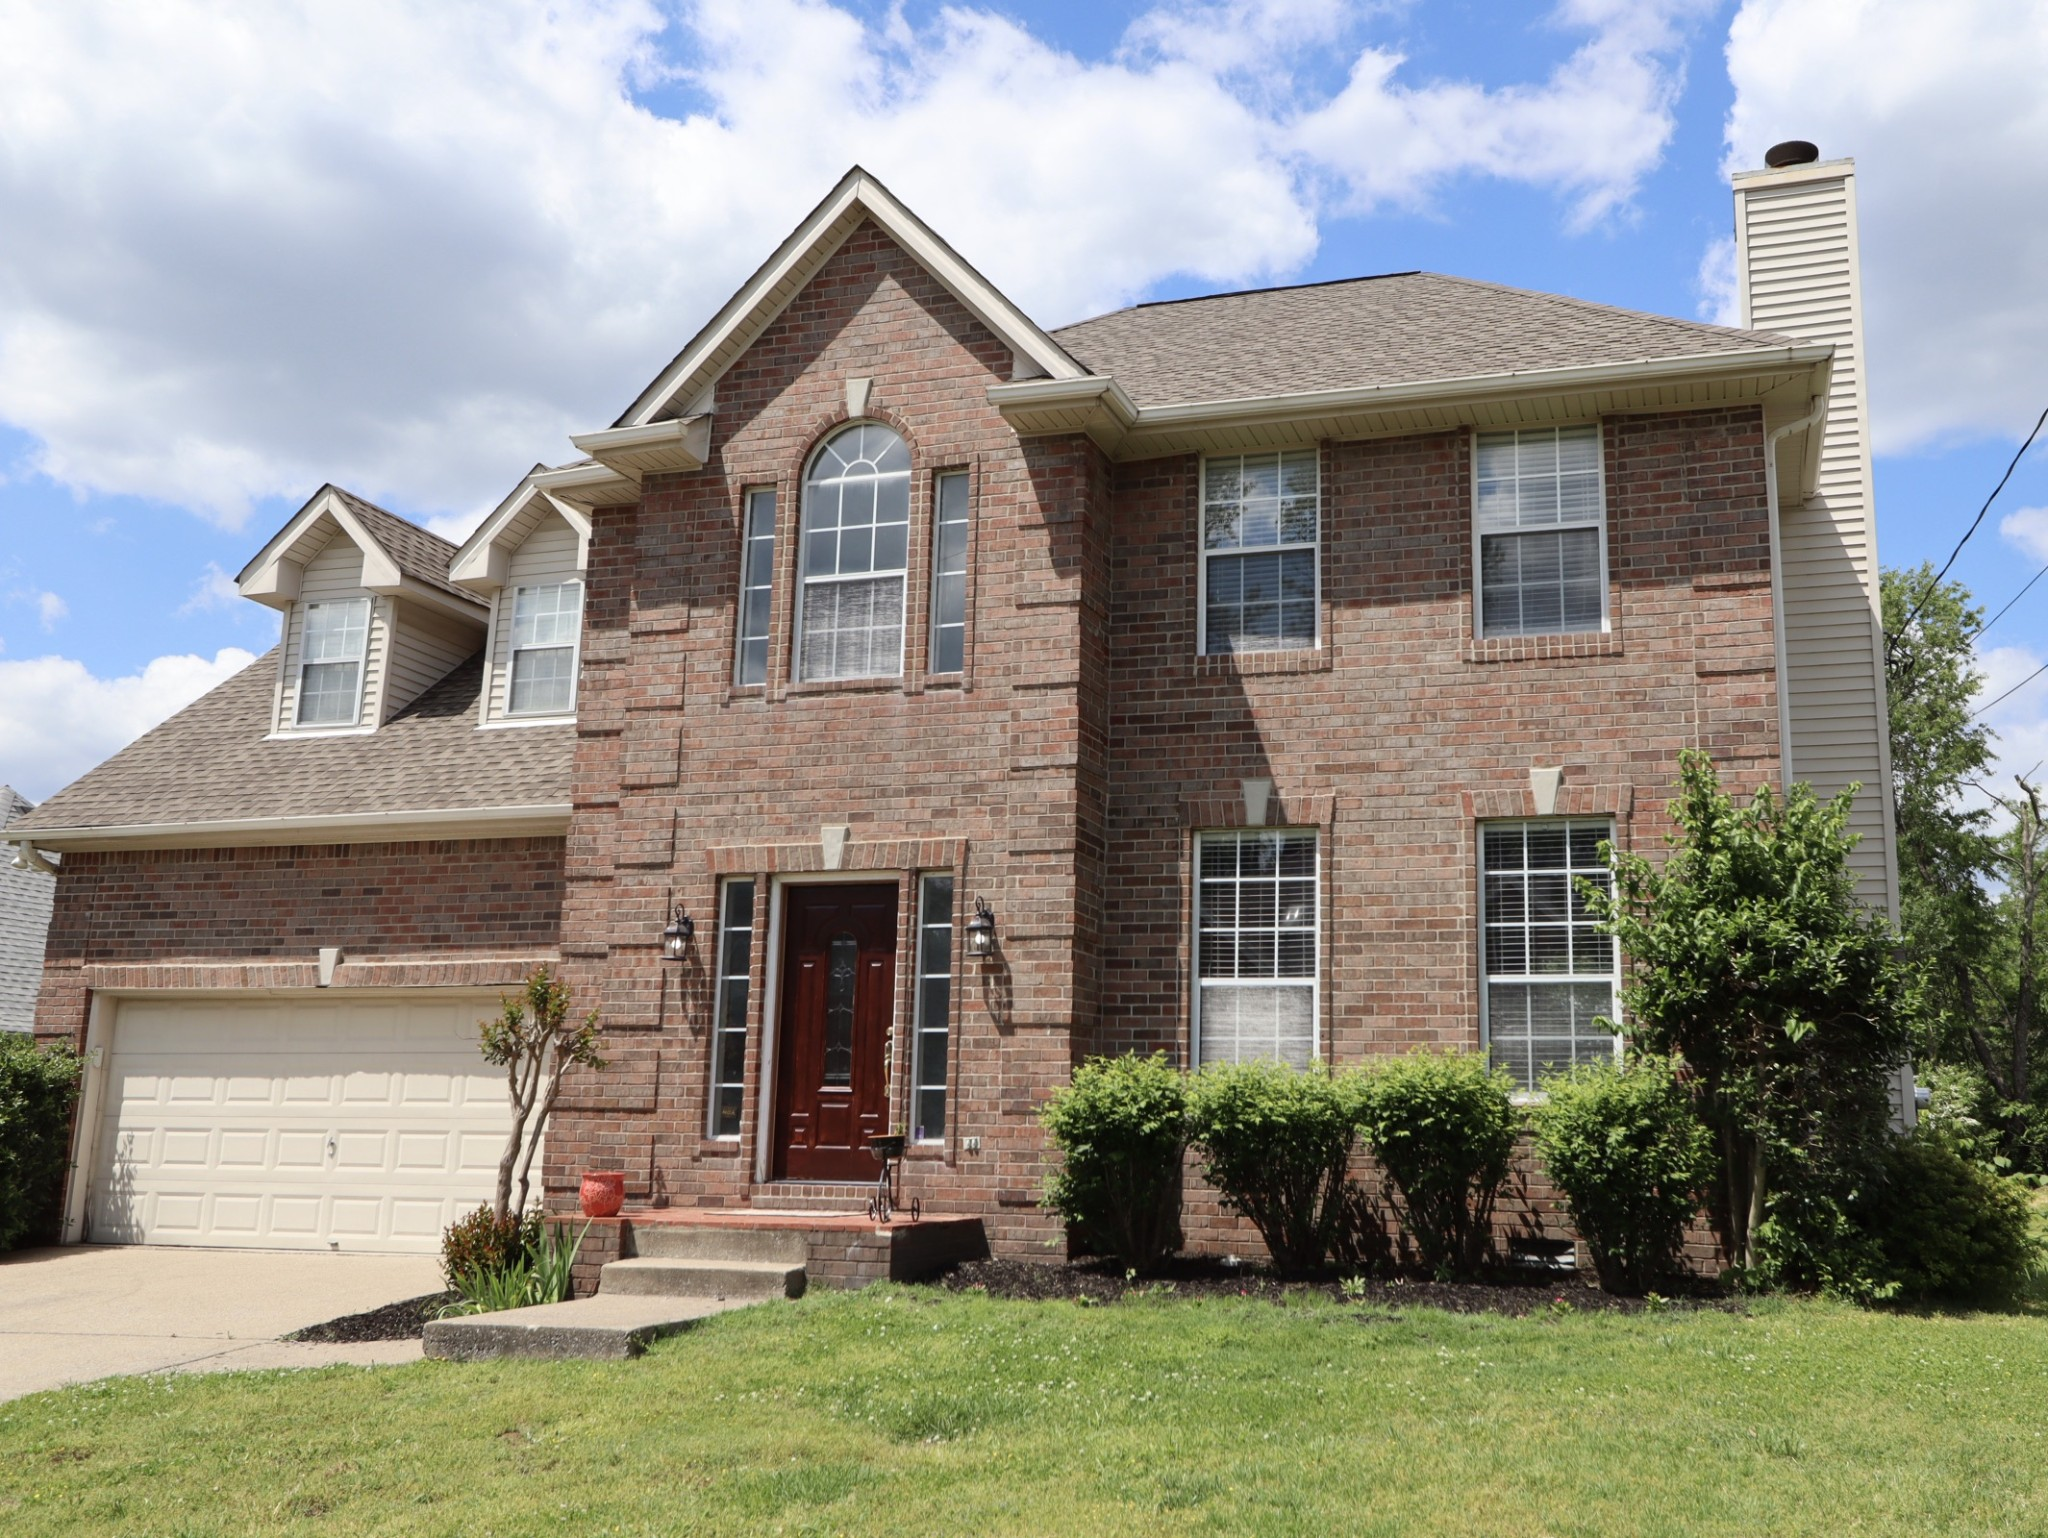 3705 Seville Dr, Hermitage, Tennessee